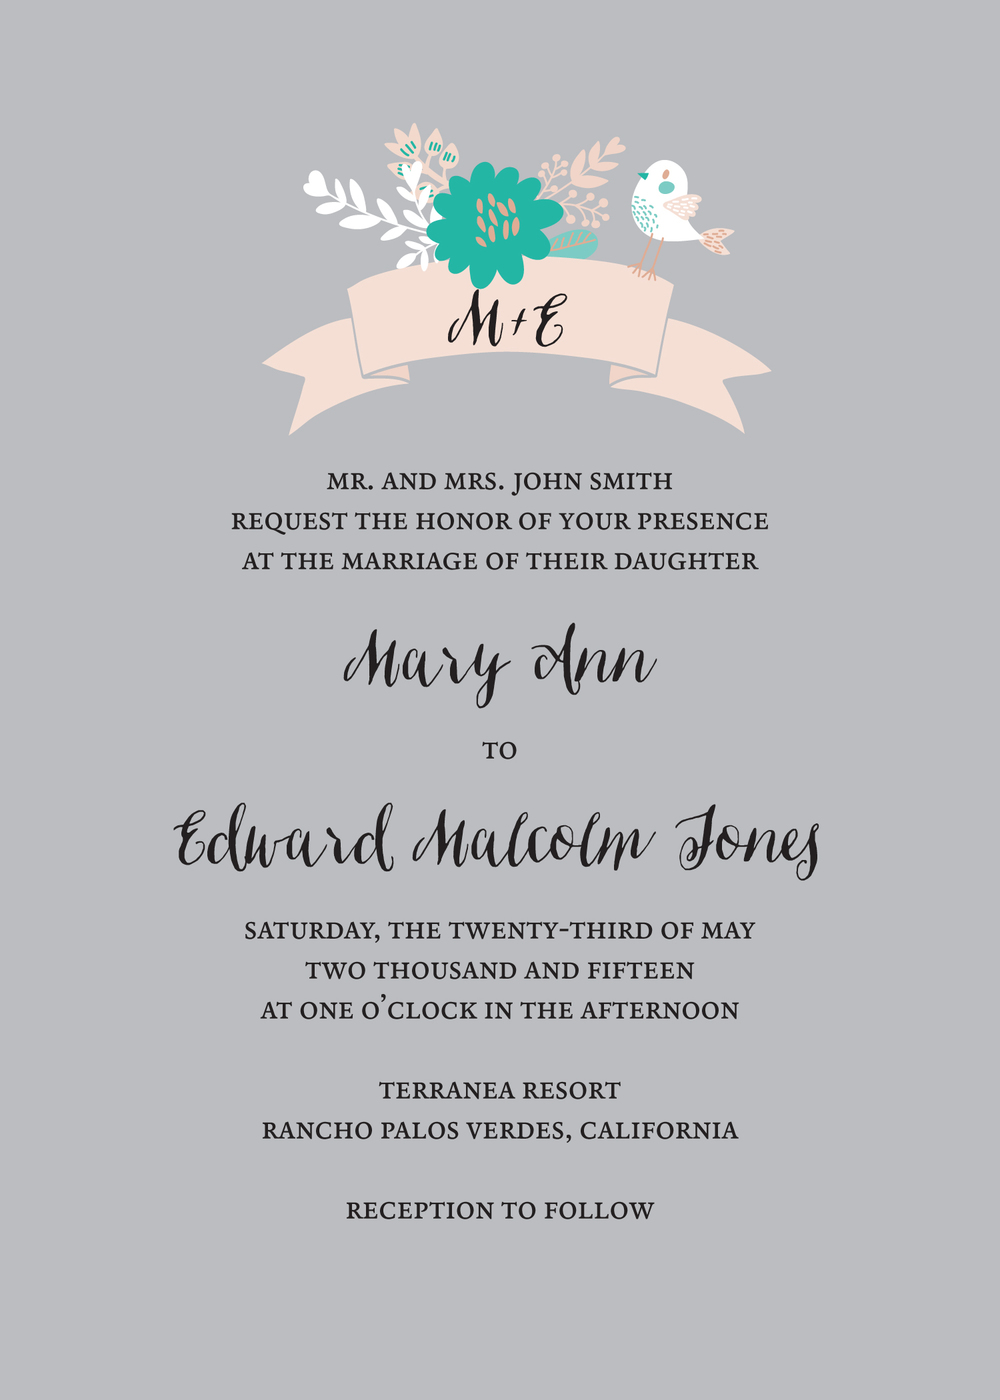 One set of parents hosting invitation wording. Using Merlo for the capped font, and Ondise for the script font. Bird on Banner design.